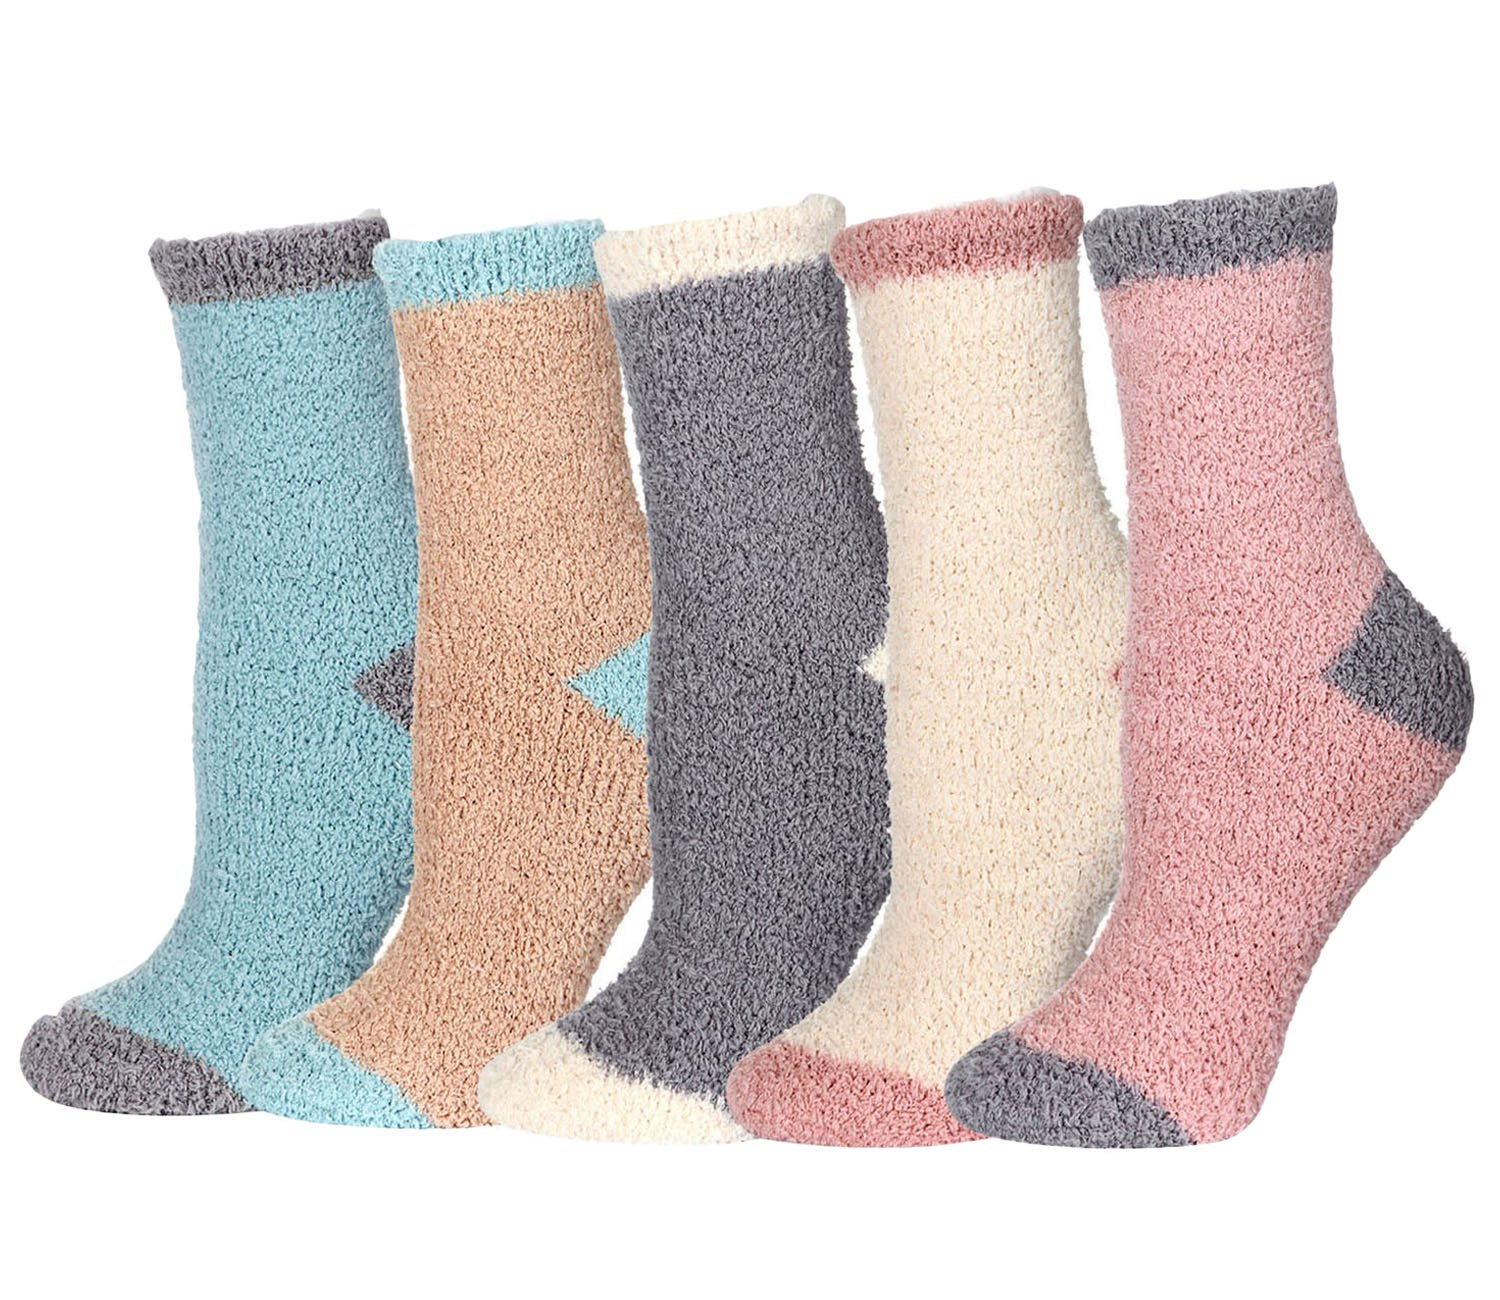 5 Pairs Fuzzy Fluffy Socks Women Girls Microfiber Slipper Sleeping Winter Warm Thermal Home Crew Socks Holiday Gifts FAYBOX